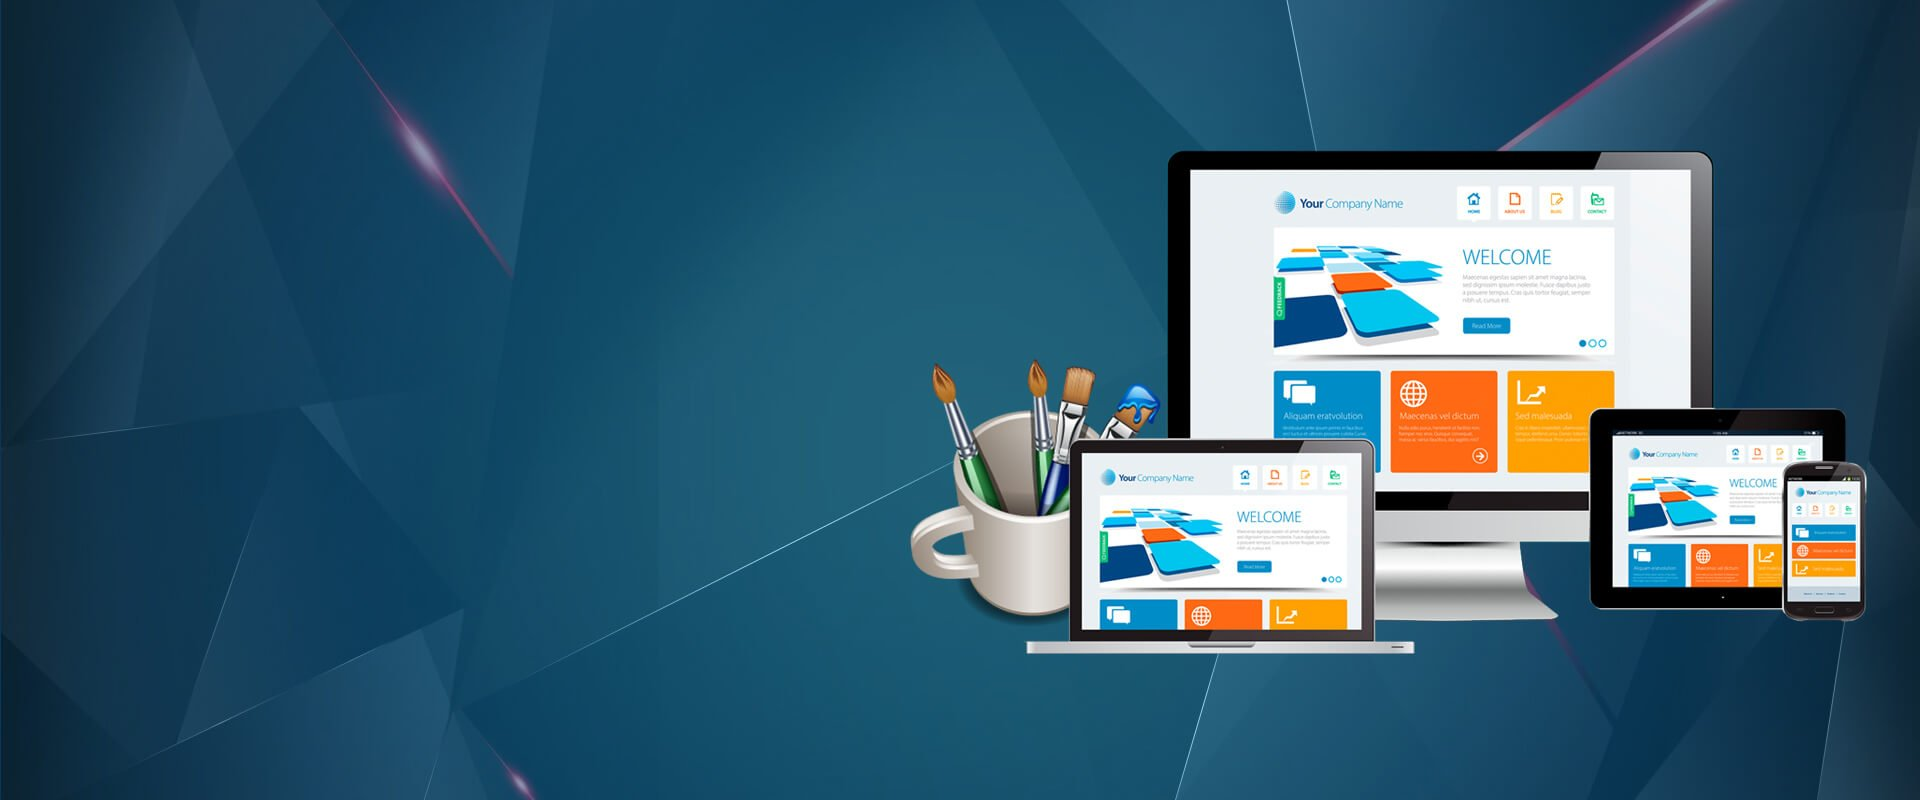 Top 10 Free Web Design Software in 2020